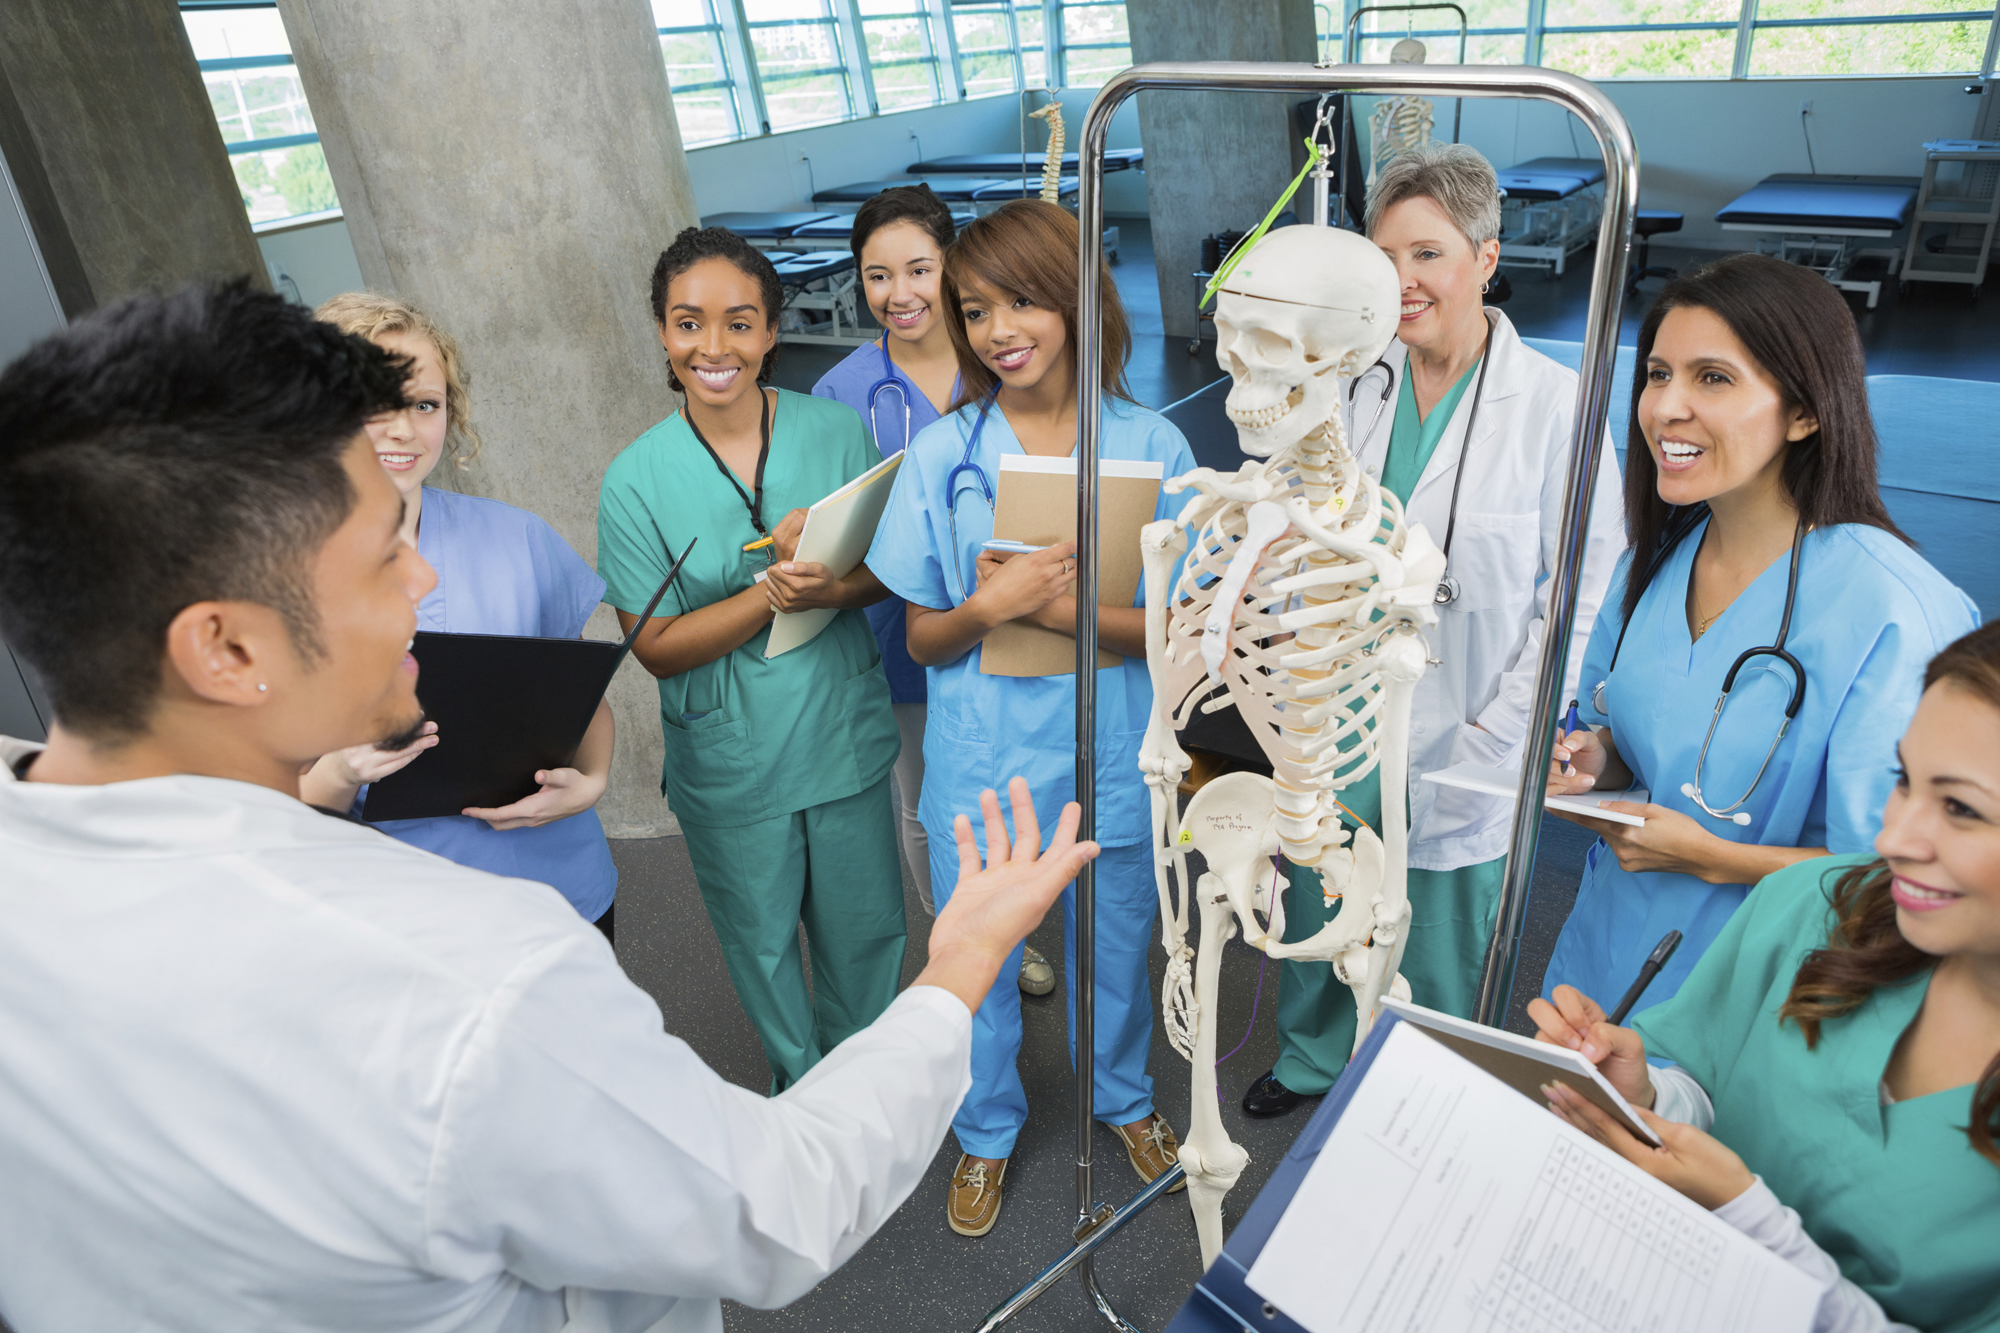 a career in medicine While attending medical school may lead to a profession that is rewarding financially and offers the excitement of working in a medical environment, other advanced health care degrees can also.